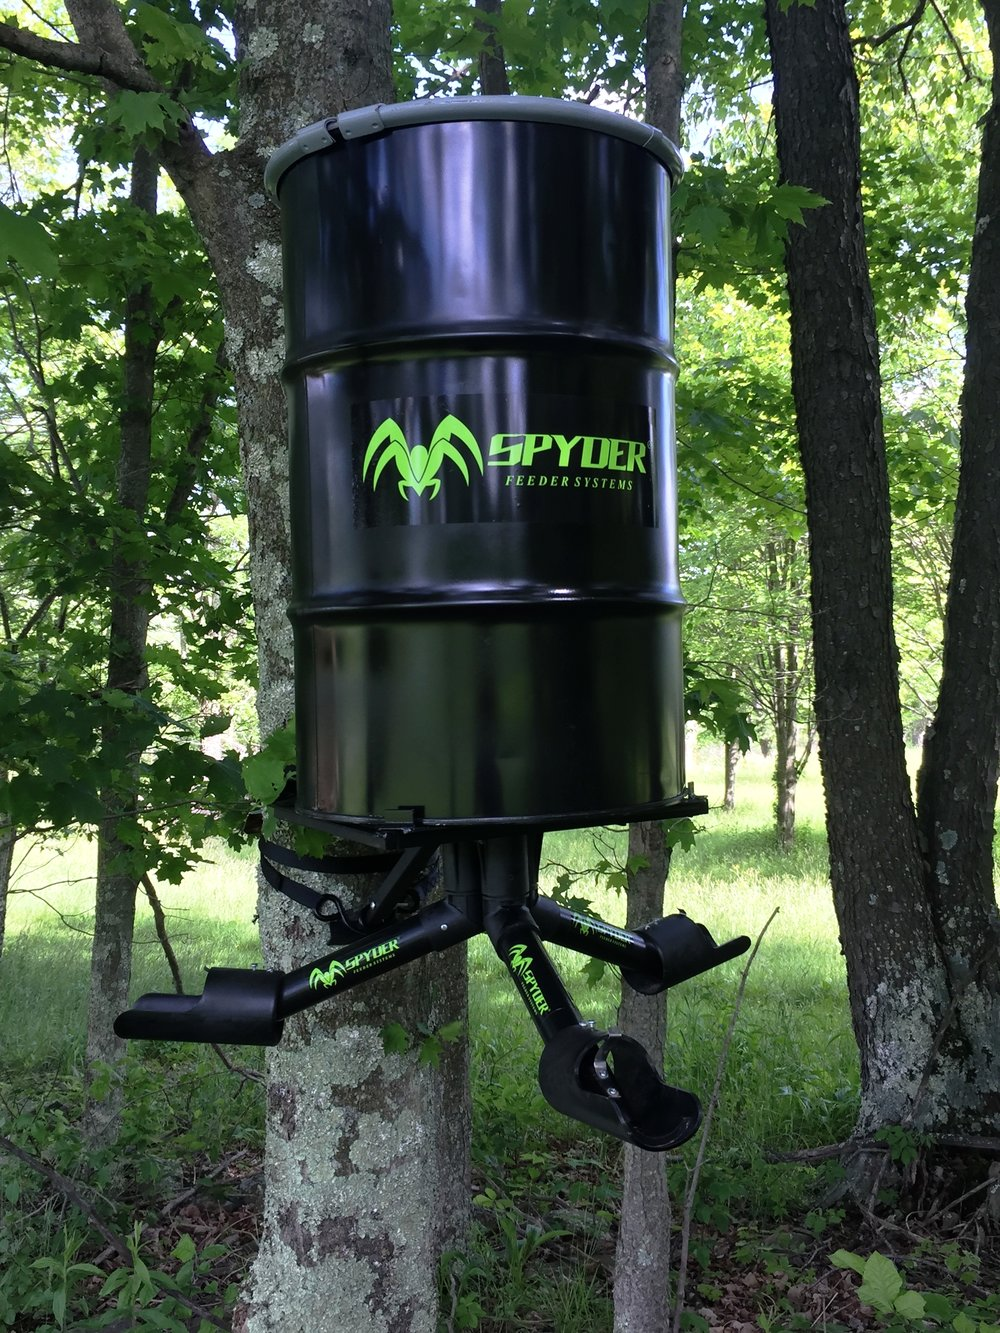 The SPYDER Gravity Feeder System  come equipped with two mounting options from which to choose. A steel platform that attaches to any tree or post, or a traditional tripod leg system.